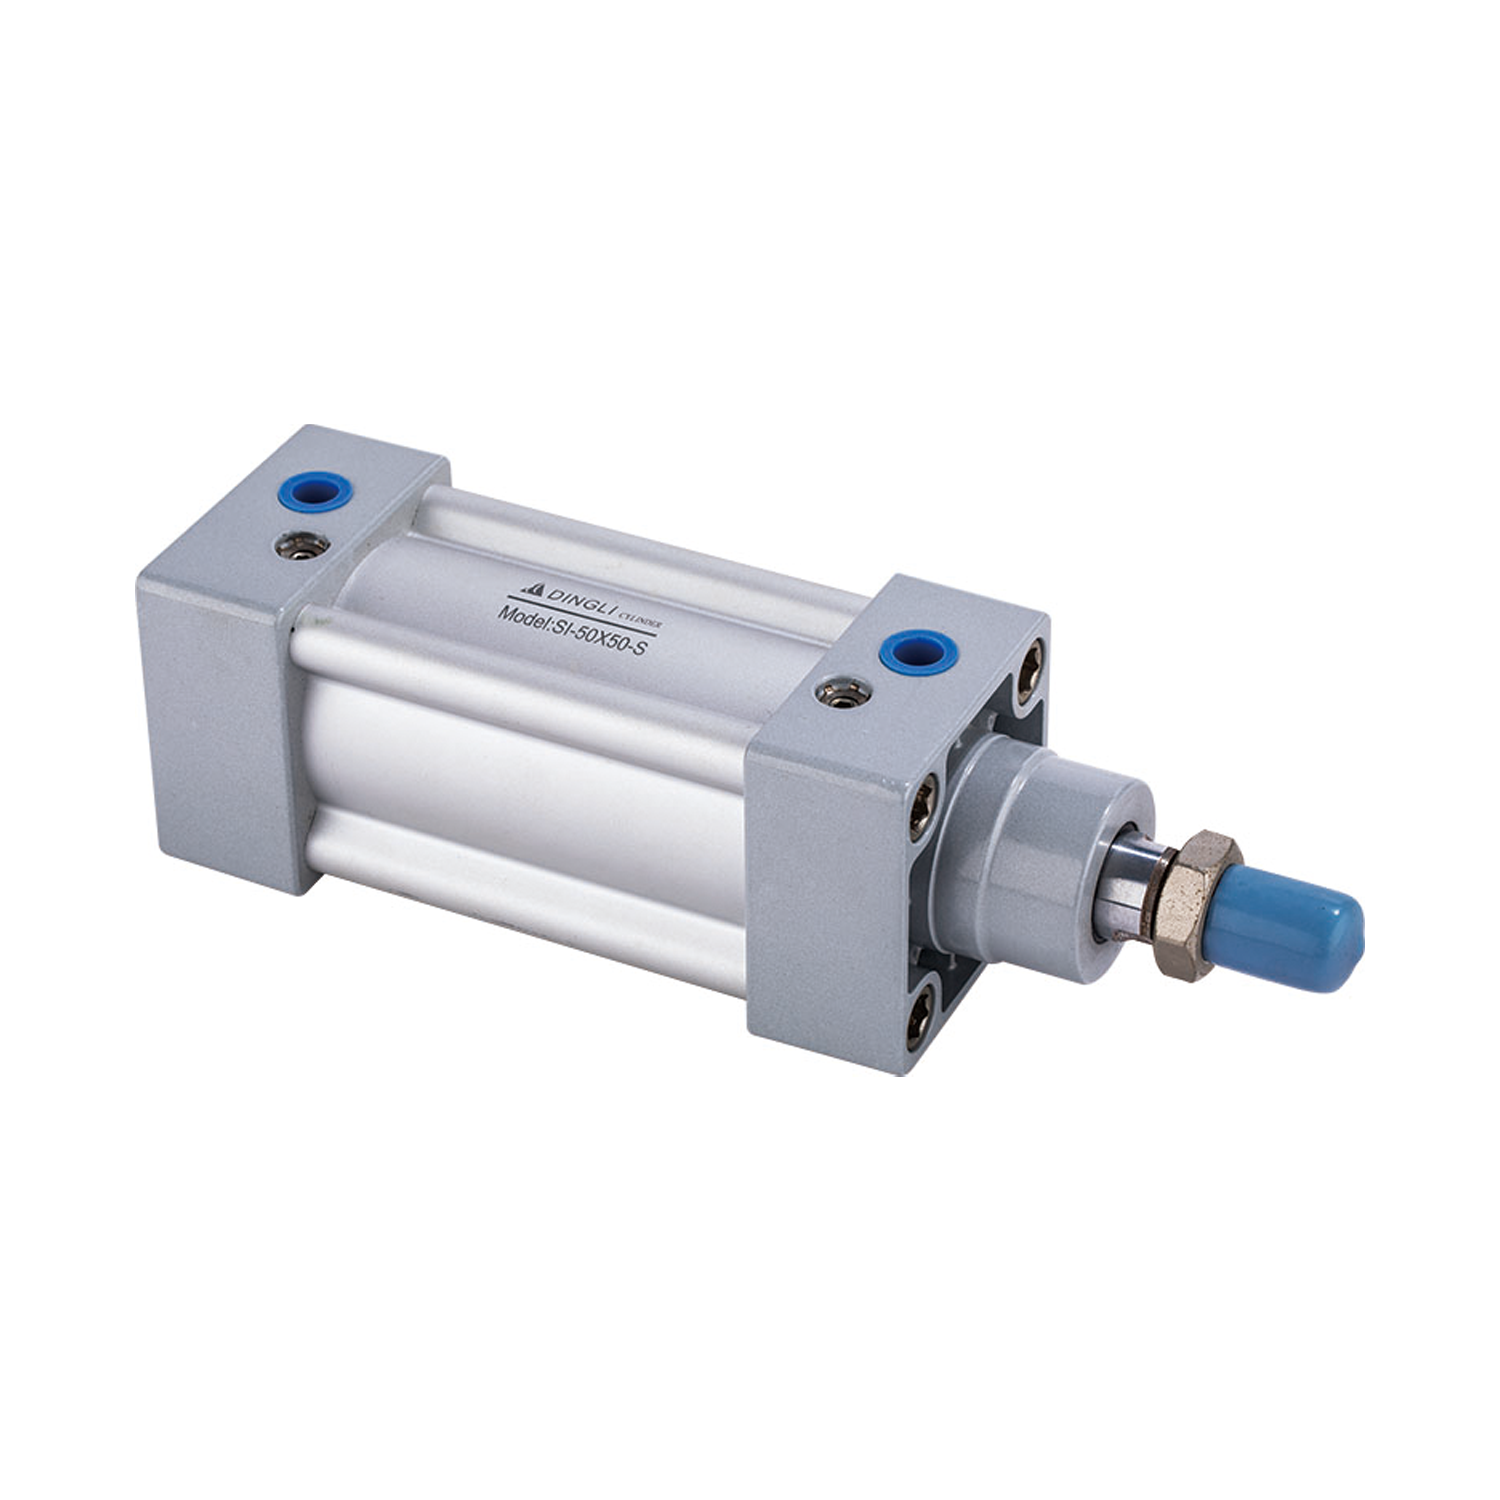 Factory made pneumatic cylinderStandard Double action Piston Cylinder Structure Pneumatic